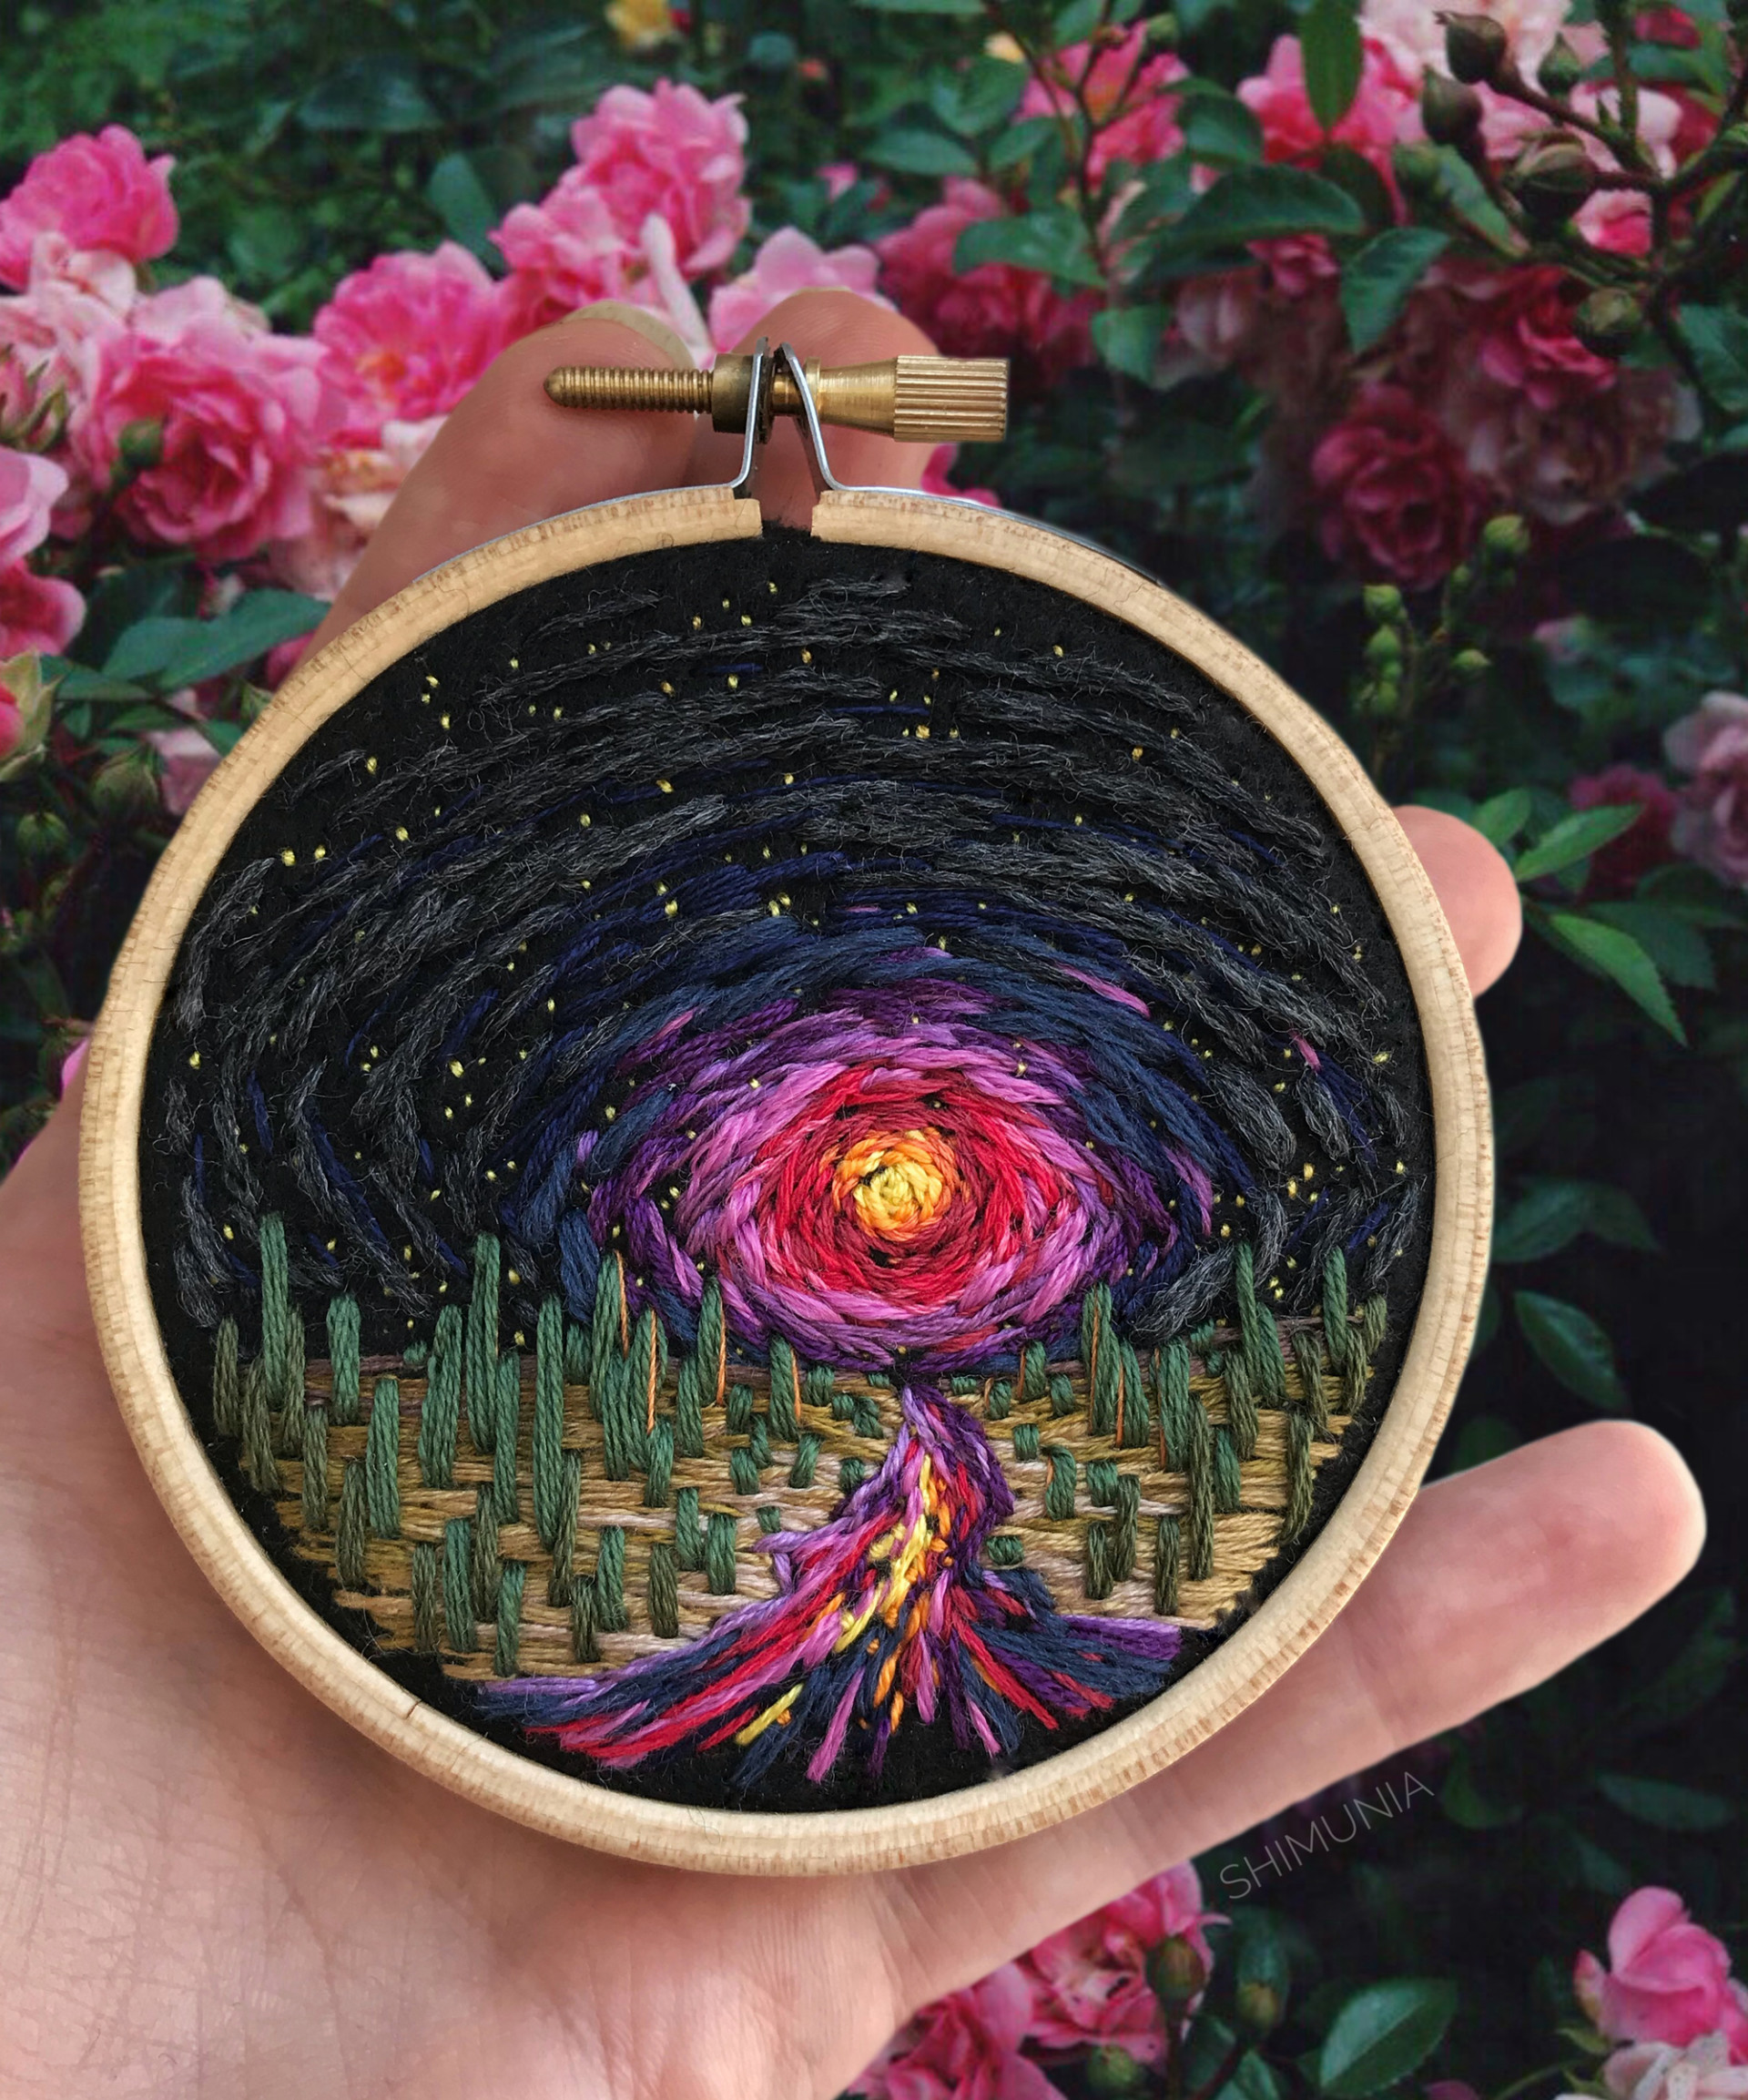 embroidery-2-960x1153@2x.jpg